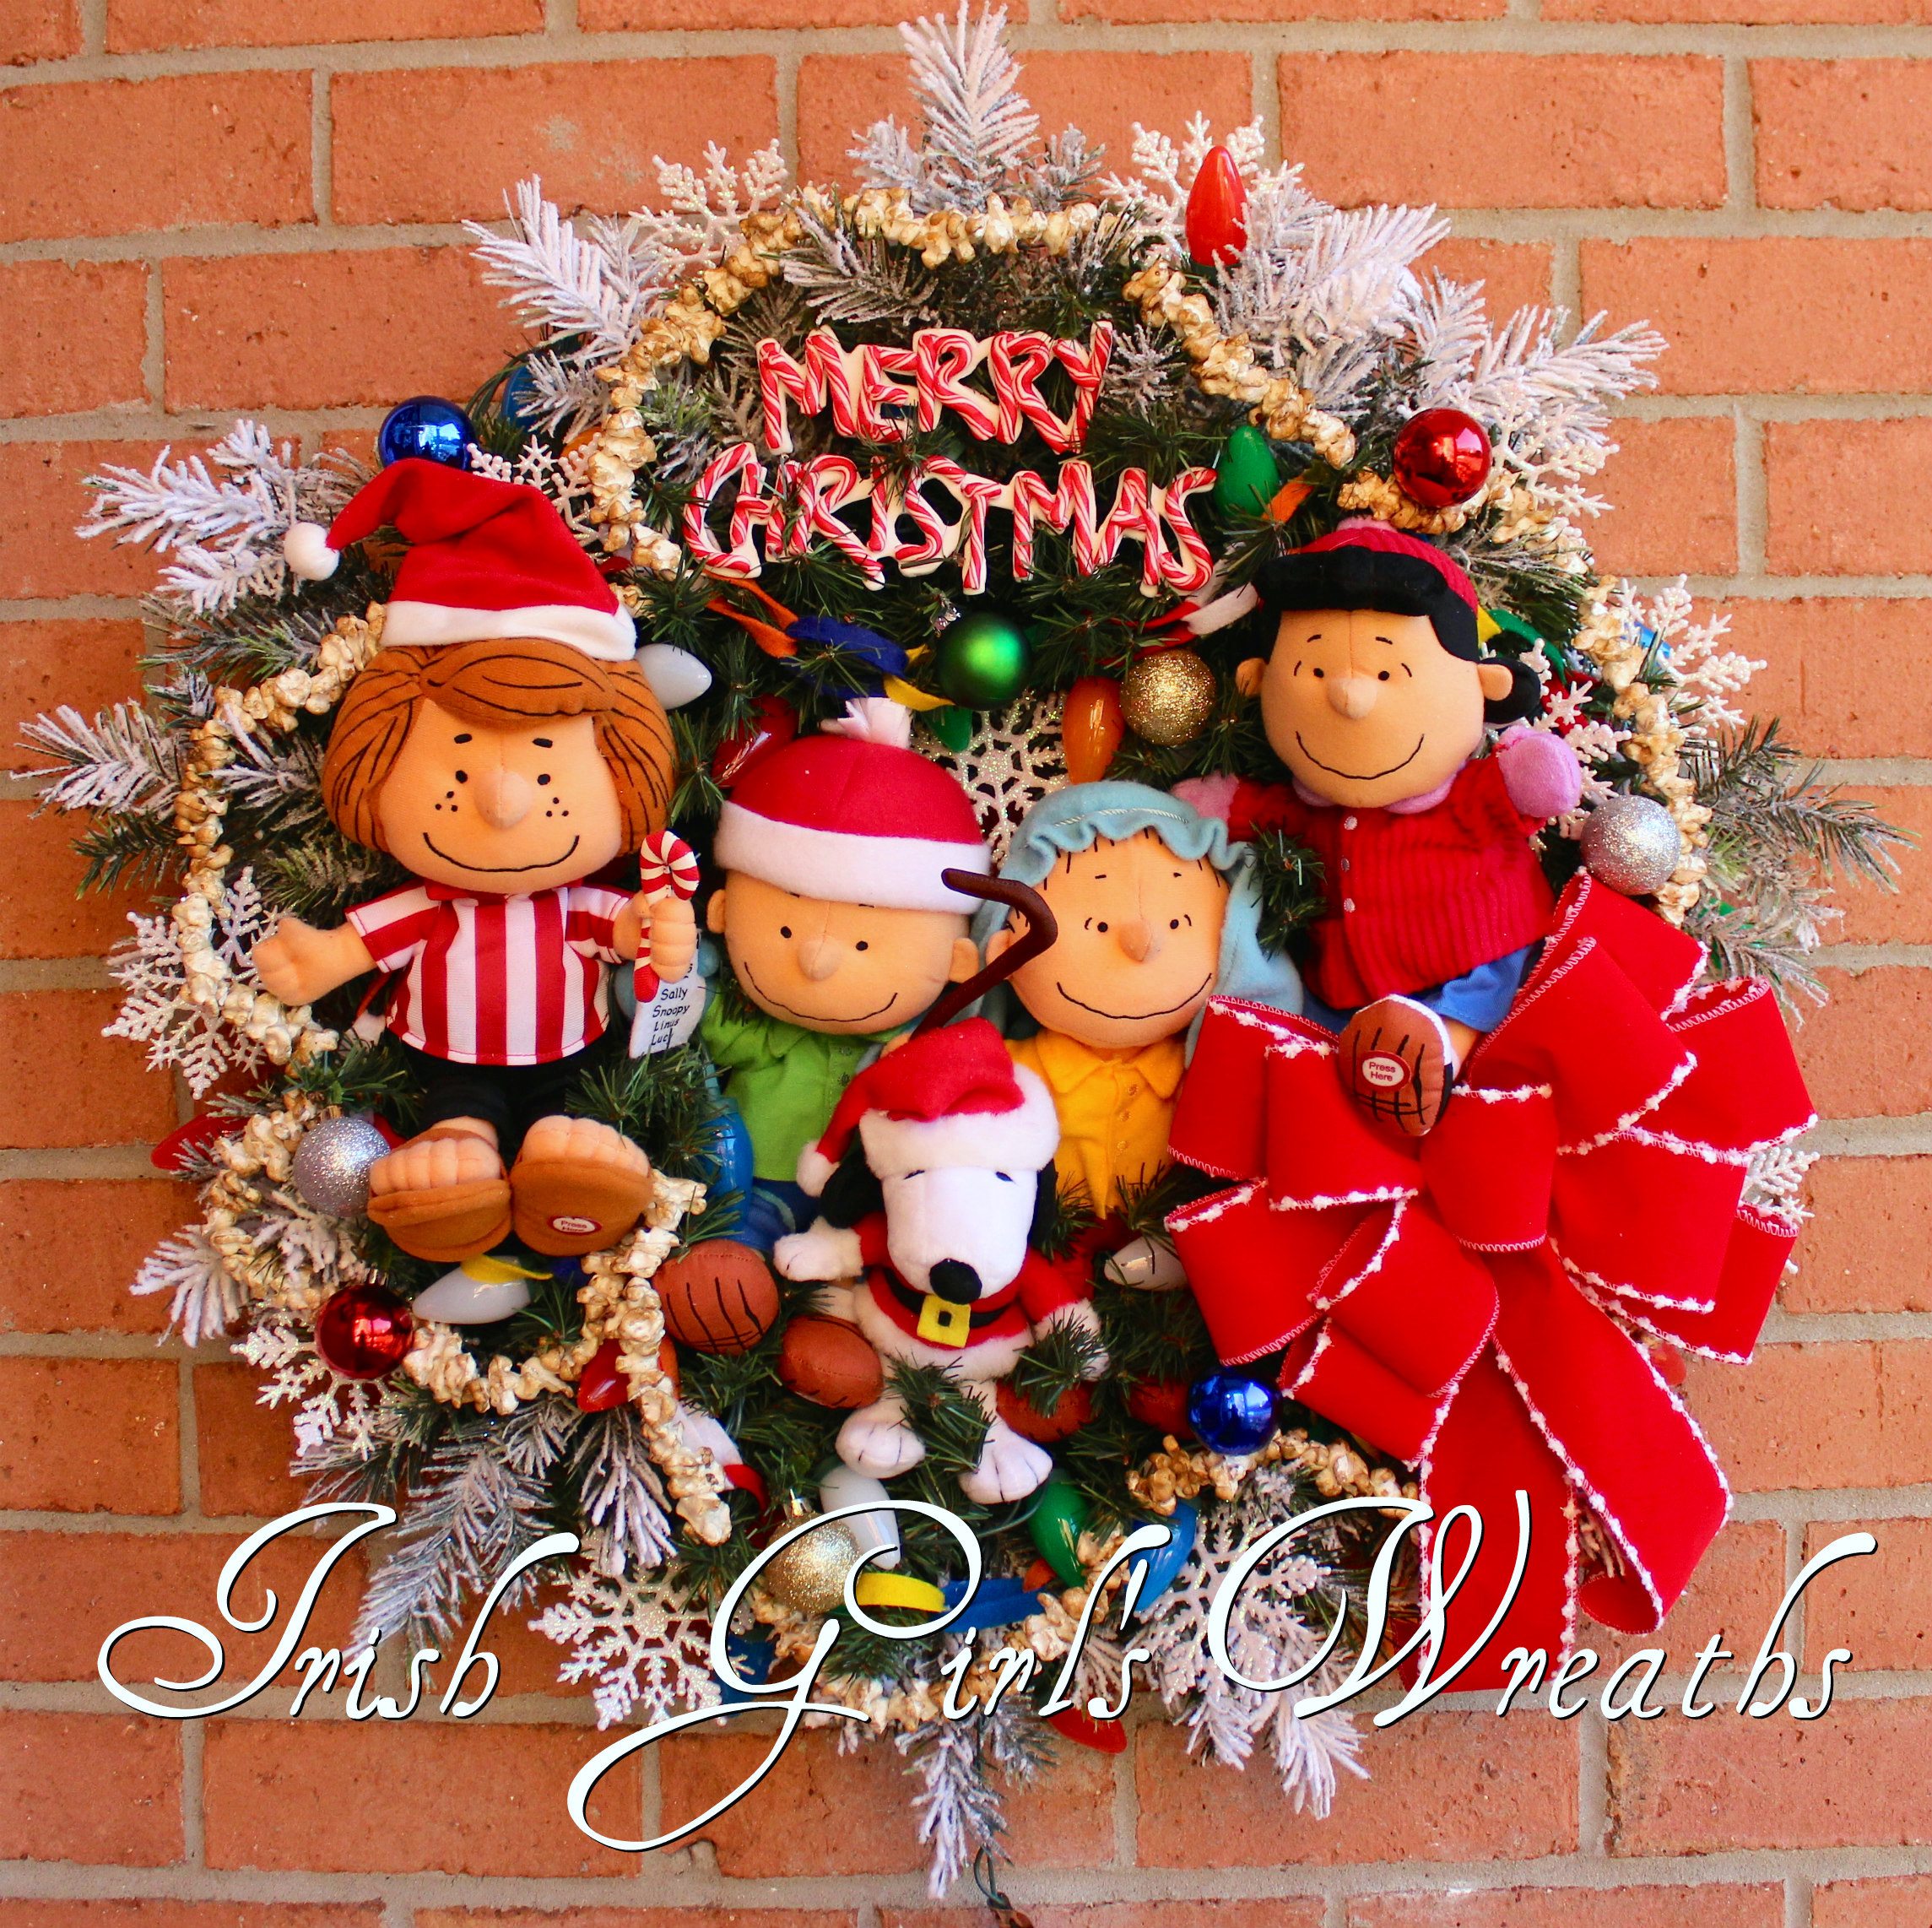 Deluxe Peanuts Gang Charlie Brown Christmas Wreath, Pre-lit, Shepherd Linus, Lucy, Peppermint Patty